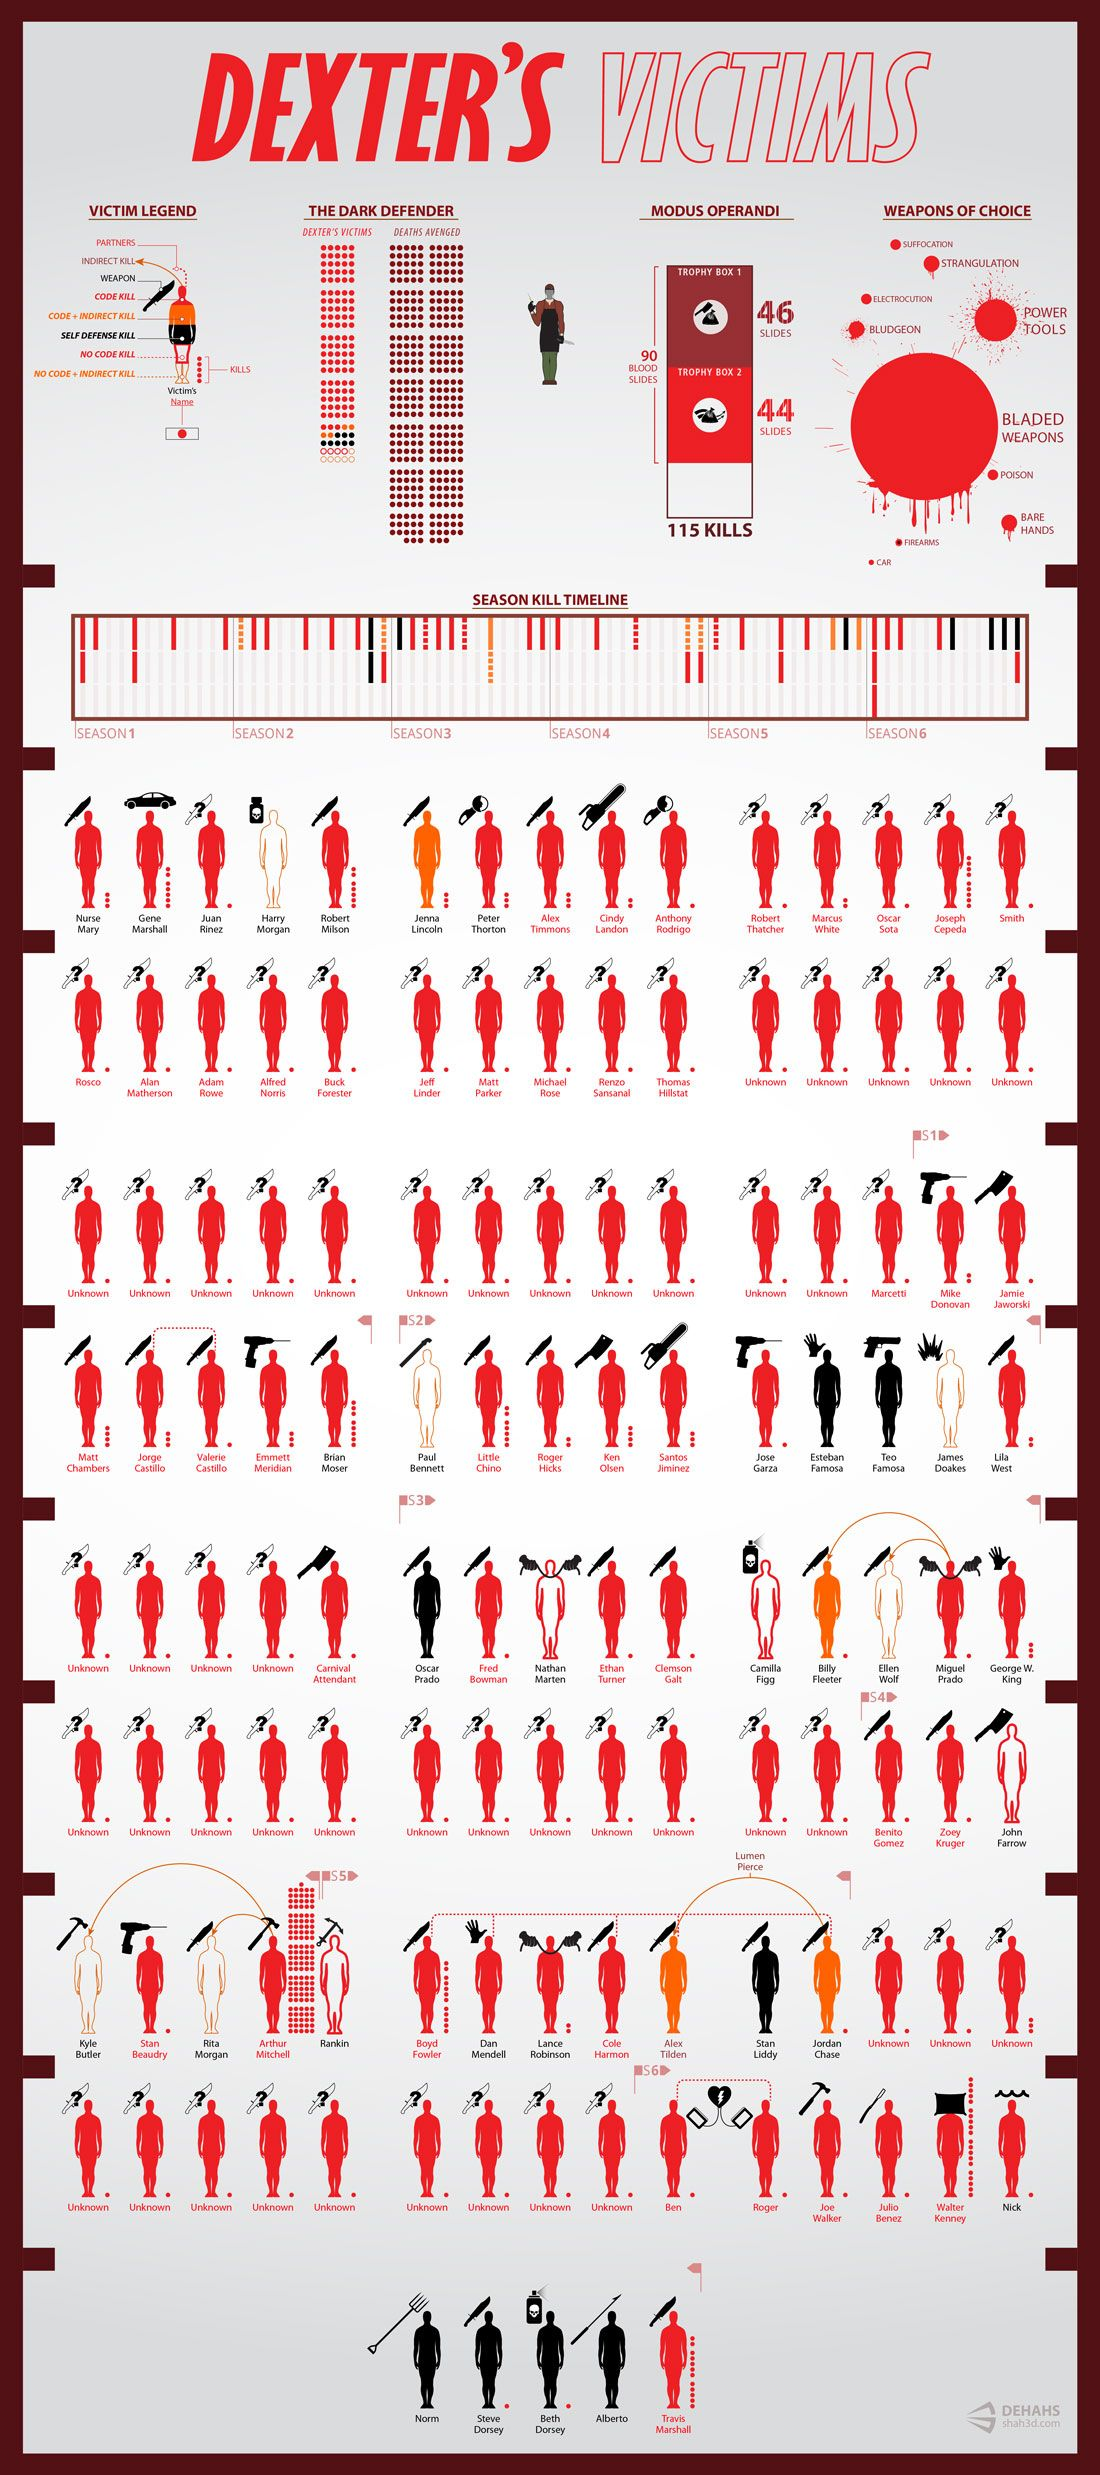 Dexter's Victims Updated for season 6, this chart